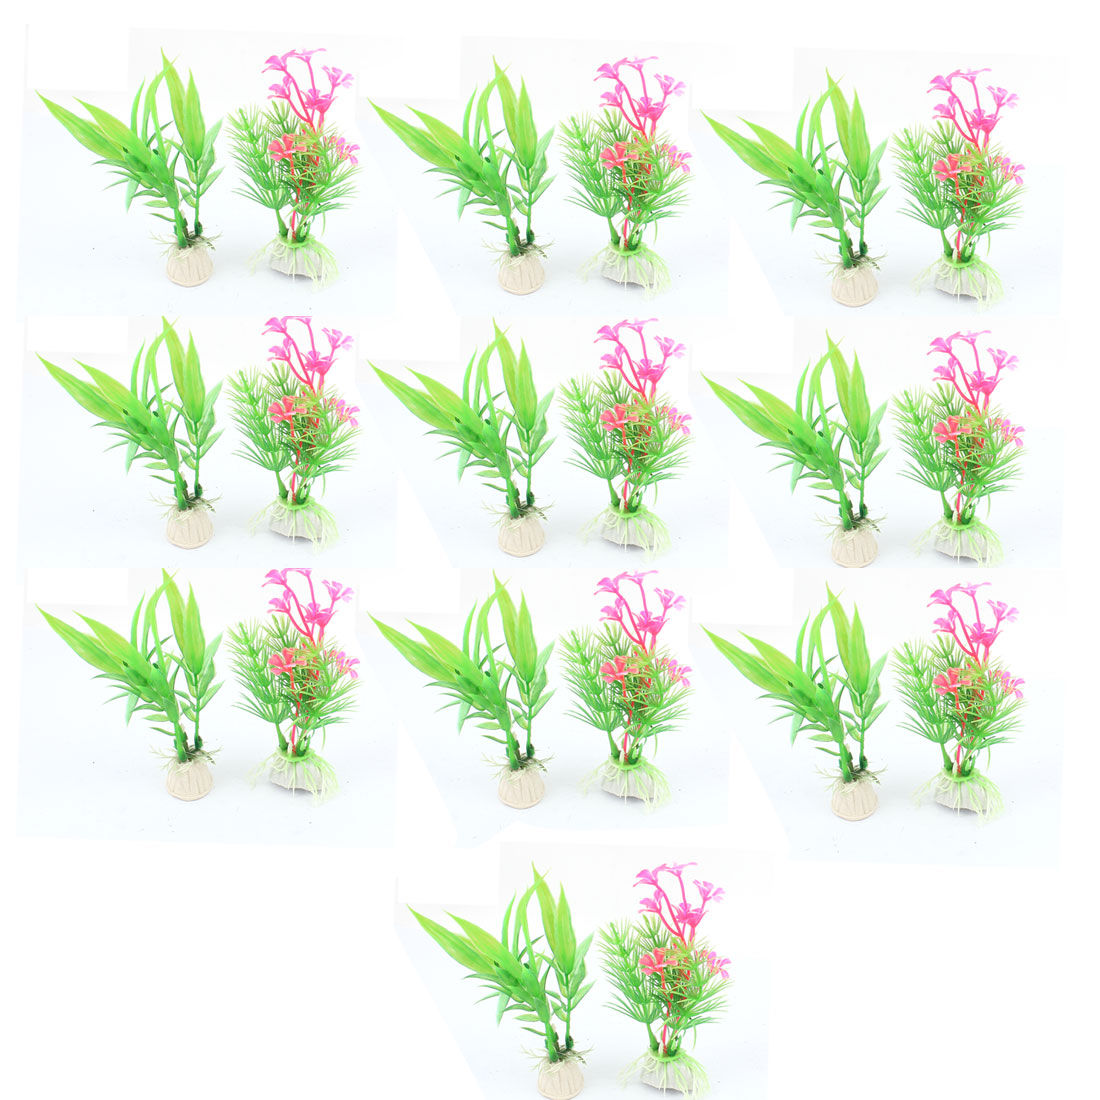 Ceramic Base Plastic Sea Weeds Grass Aquarium Plants Decor 20pcs